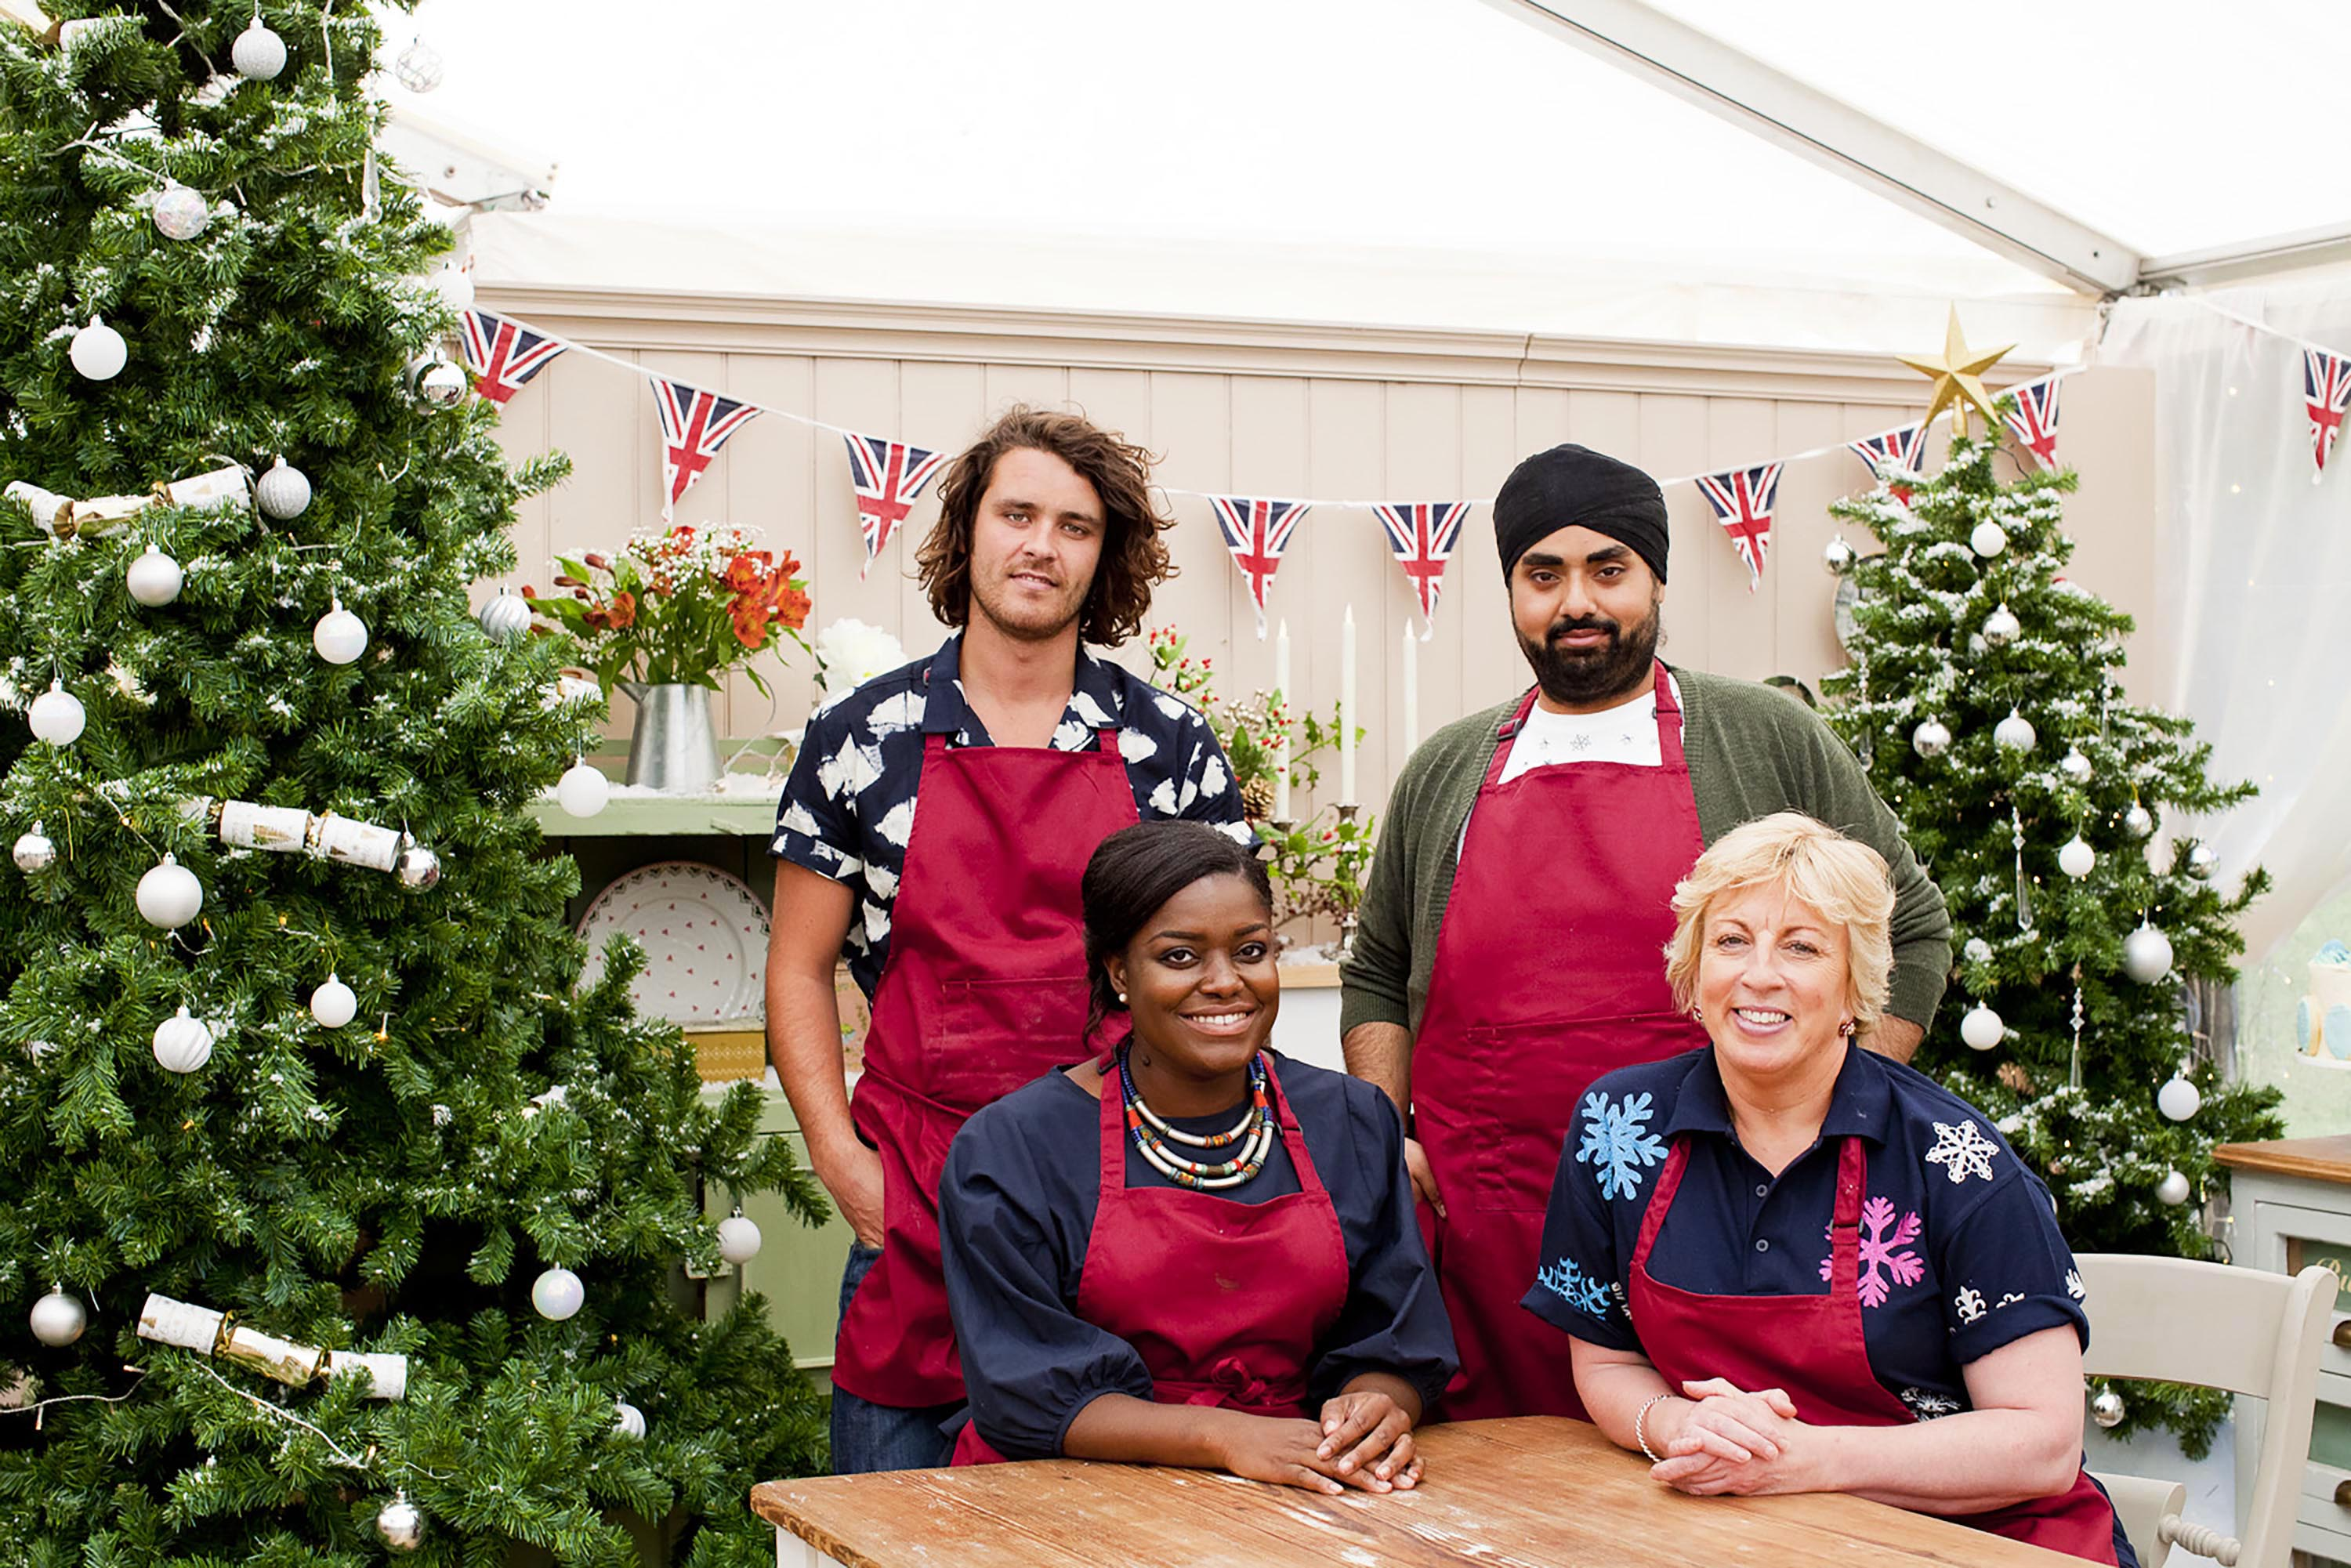 The Great British Bake Off Christmas Special - Left to Right: Rob and Rav standing, Benjamina and Sndi sitting.